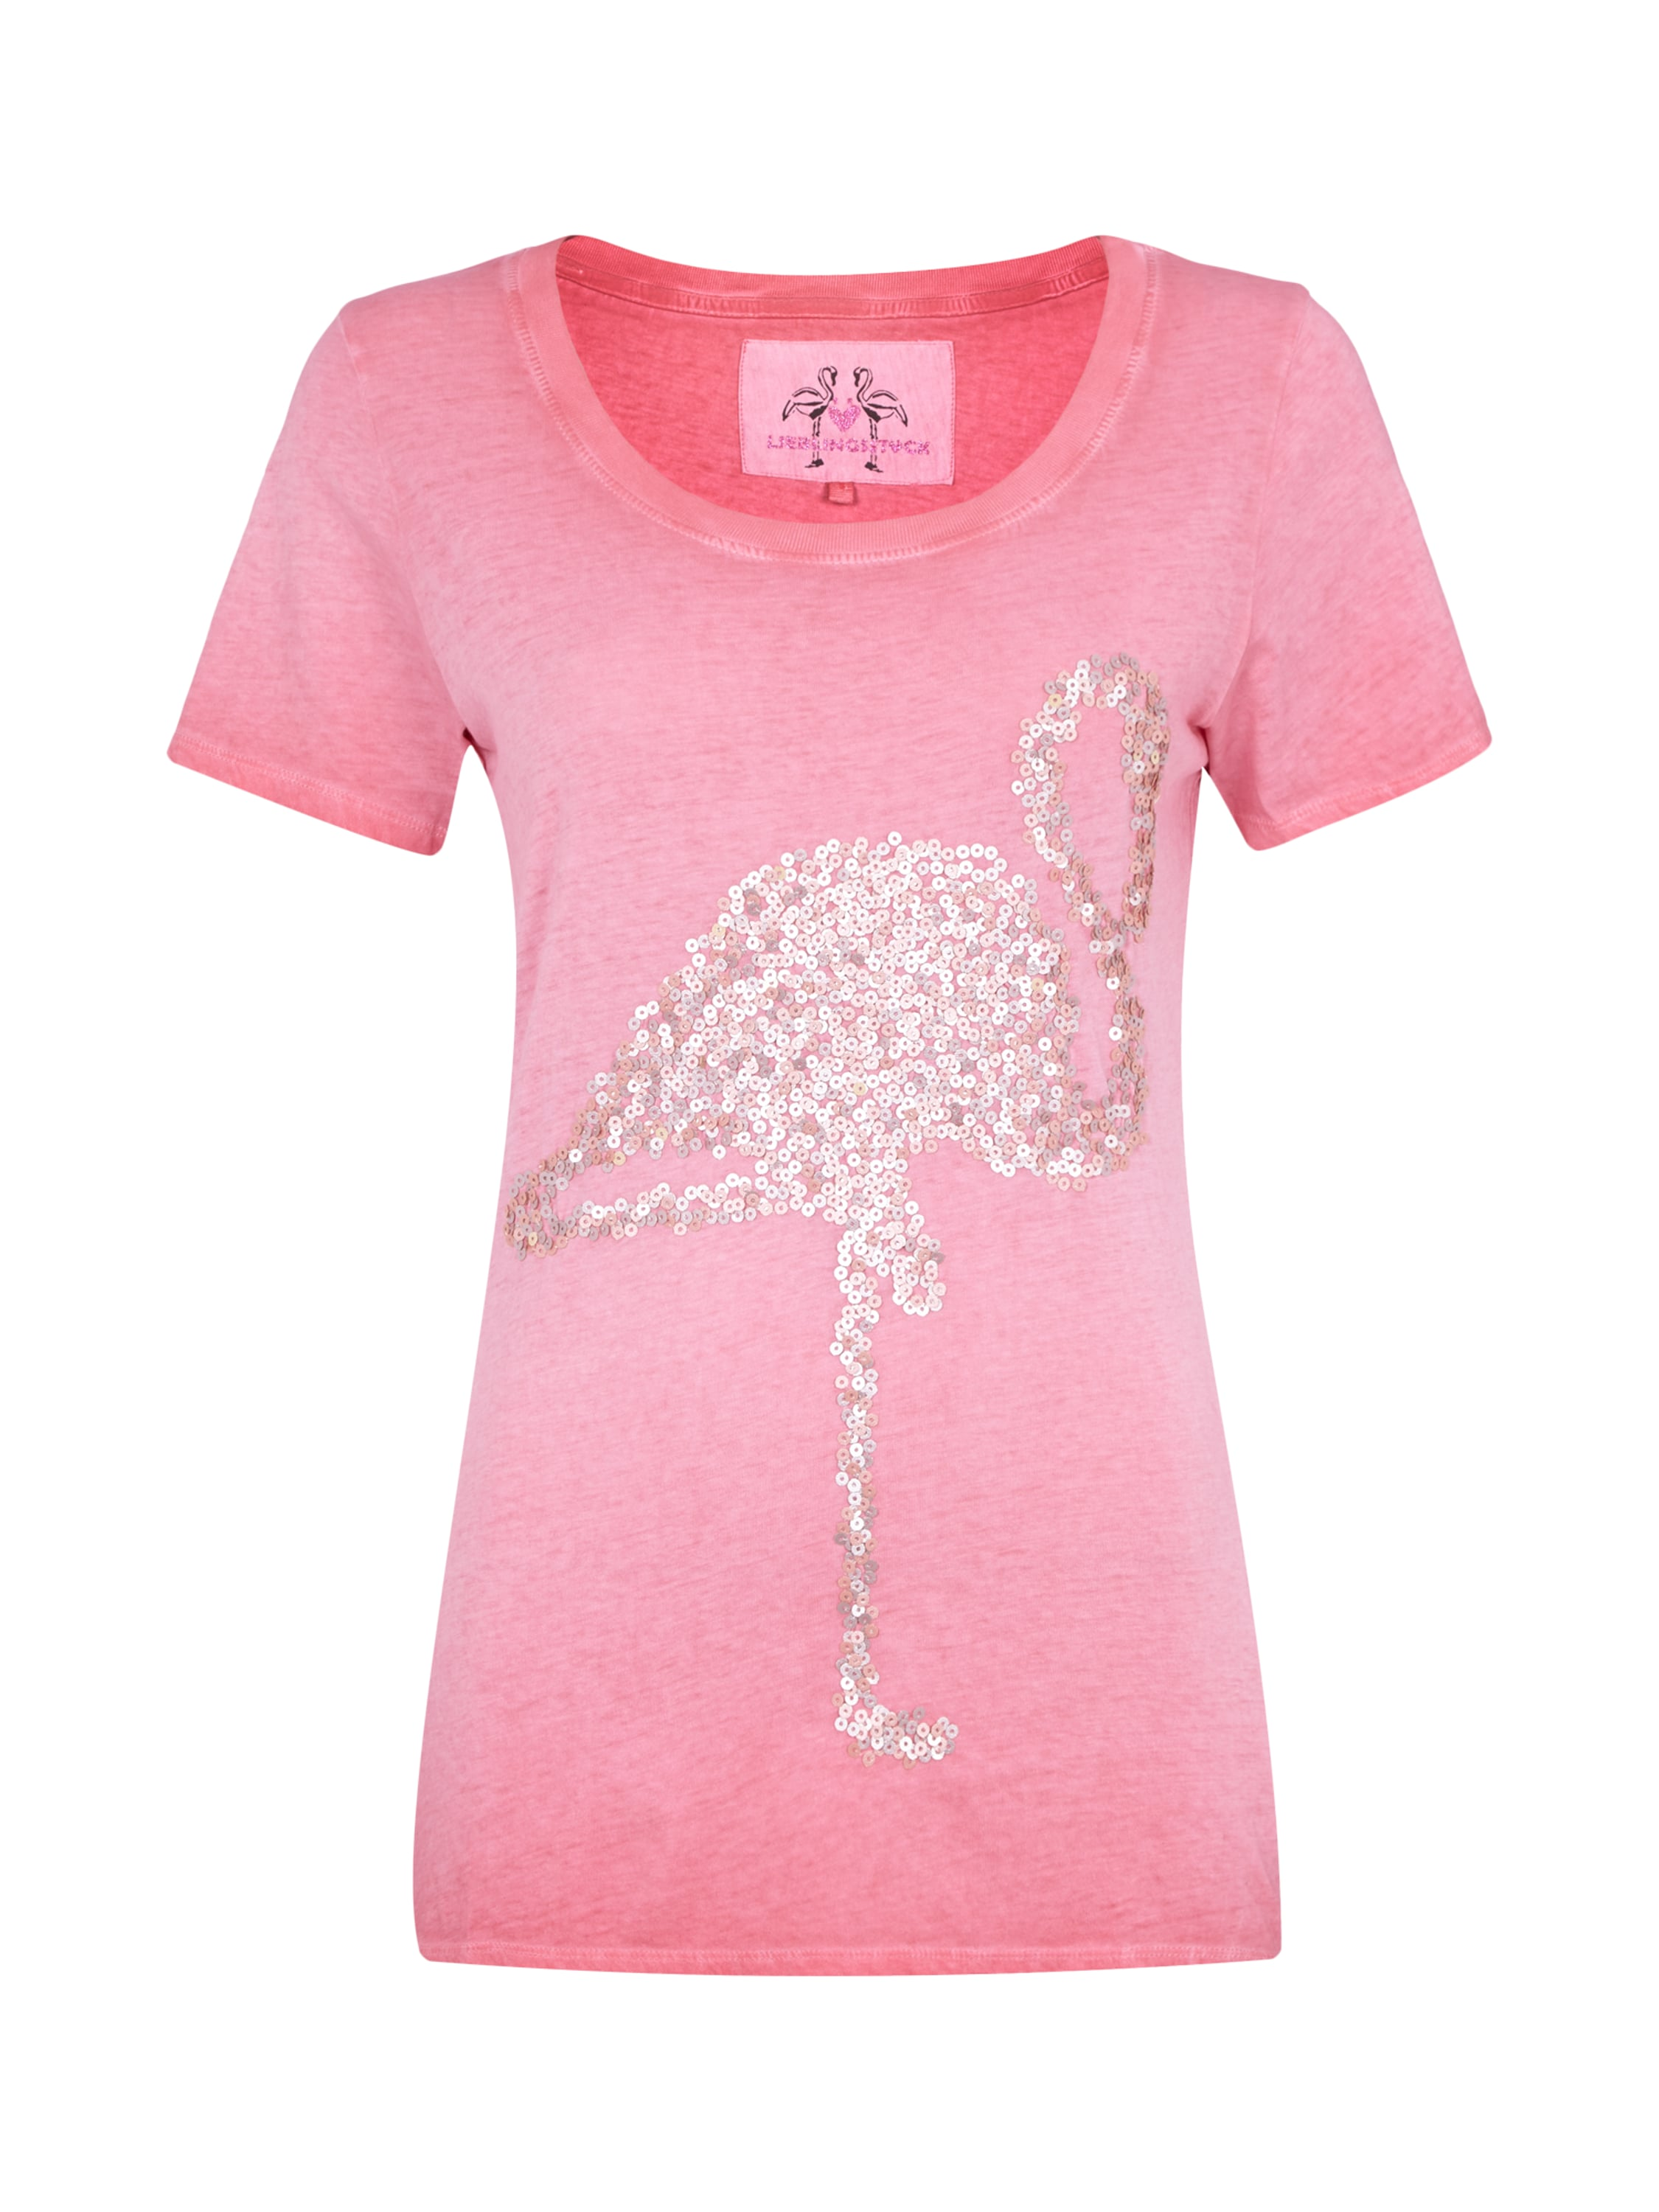 washed out t shirt mit flamingo aus pailletten fashion id online shop. Black Bedroom Furniture Sets. Home Design Ideas